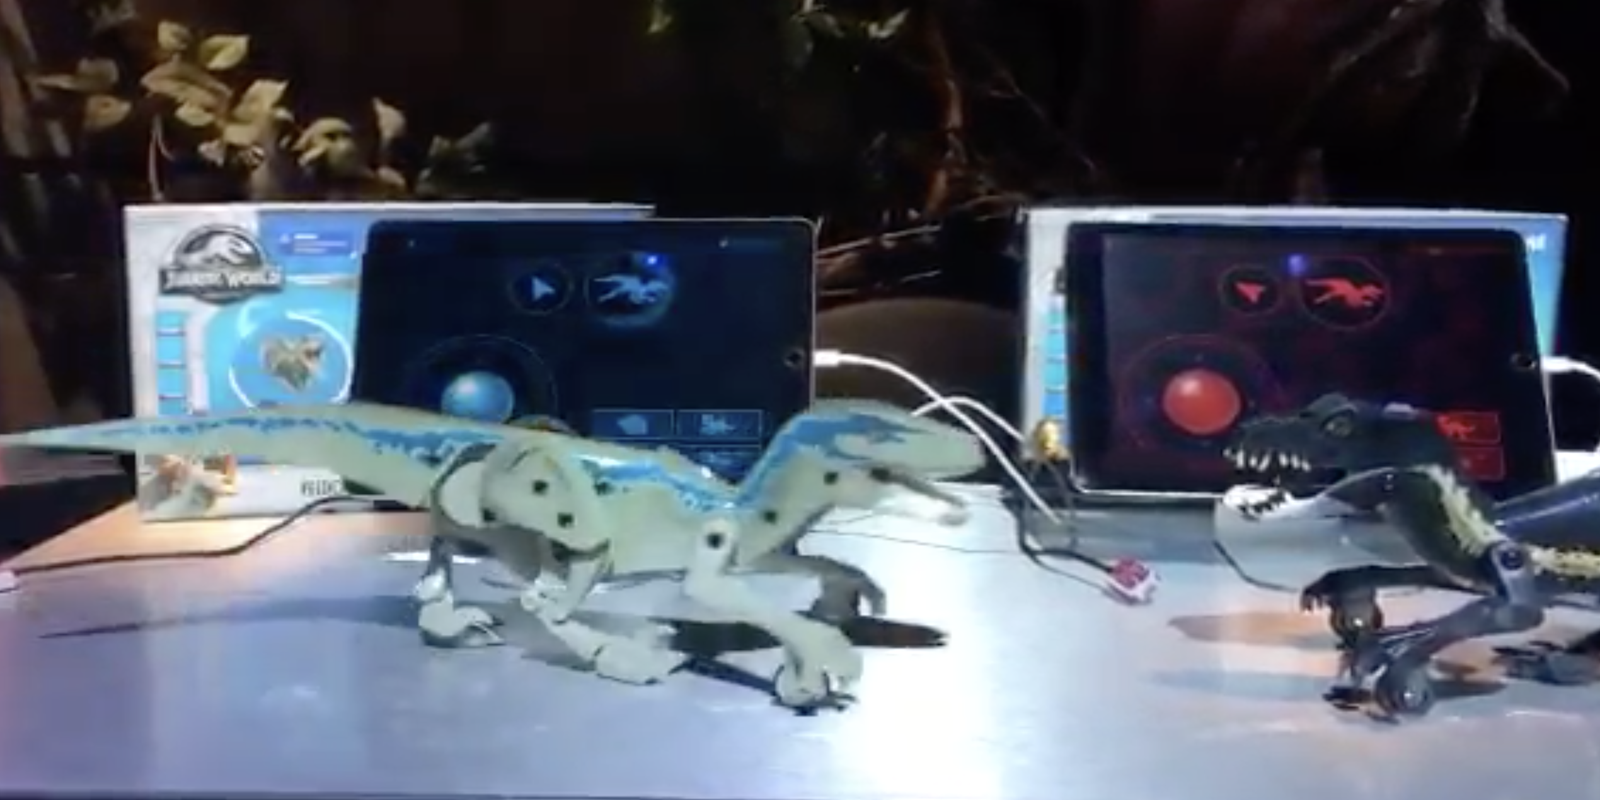 This new 'Jurassic World' toy will teach your child how to code